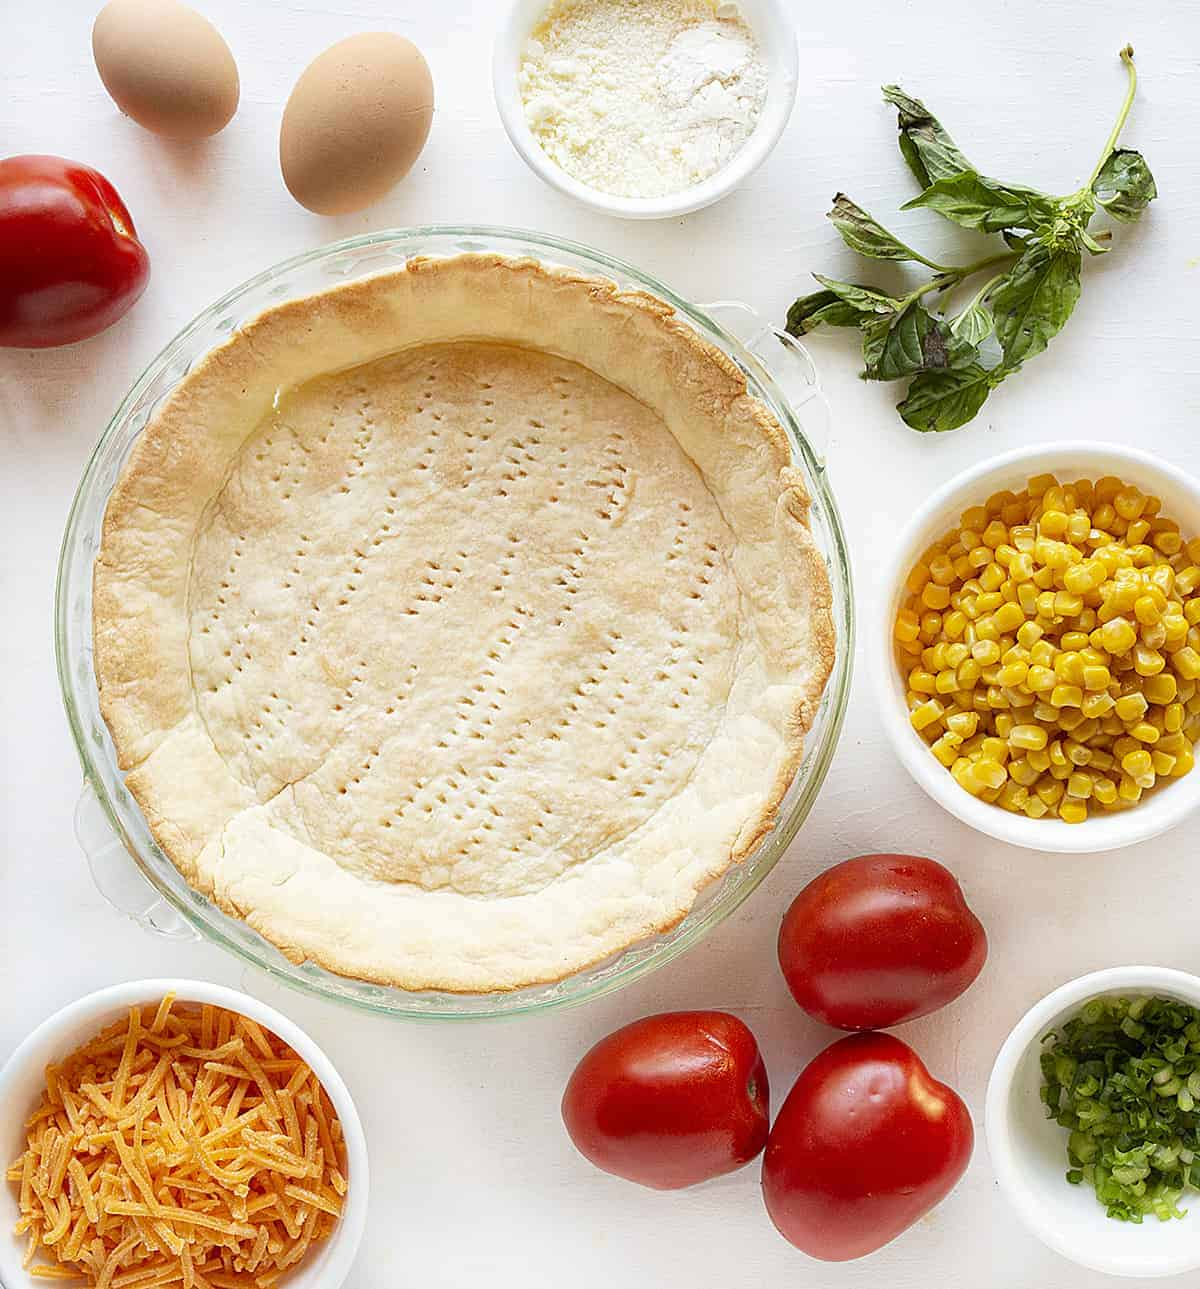 Ingredients for Tomato and Corn Pie